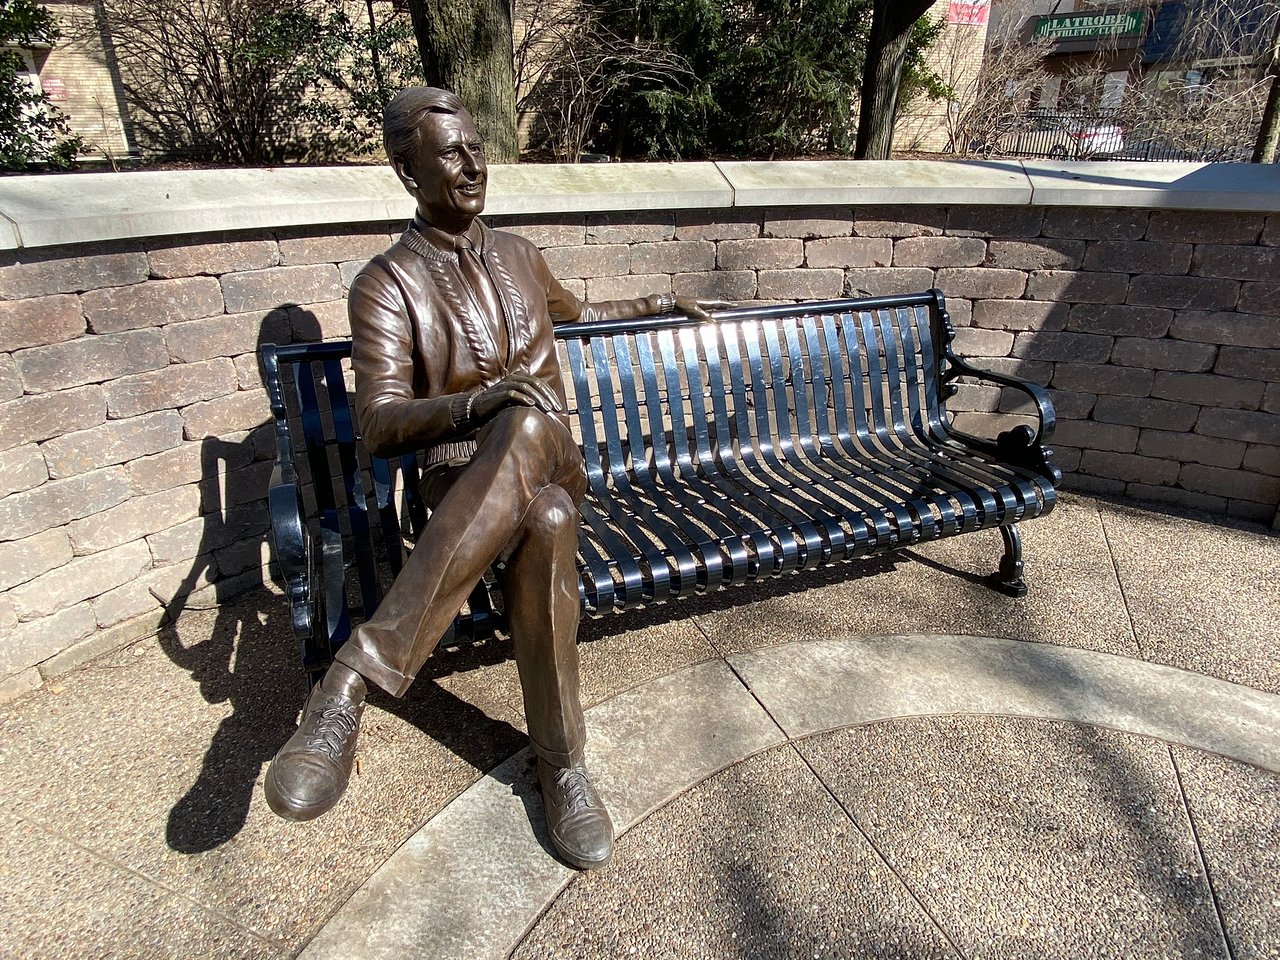 Mister Rogers Park Bench Latrobe 2020 All You Need To Know Before You Go With Photos Tripadvisor